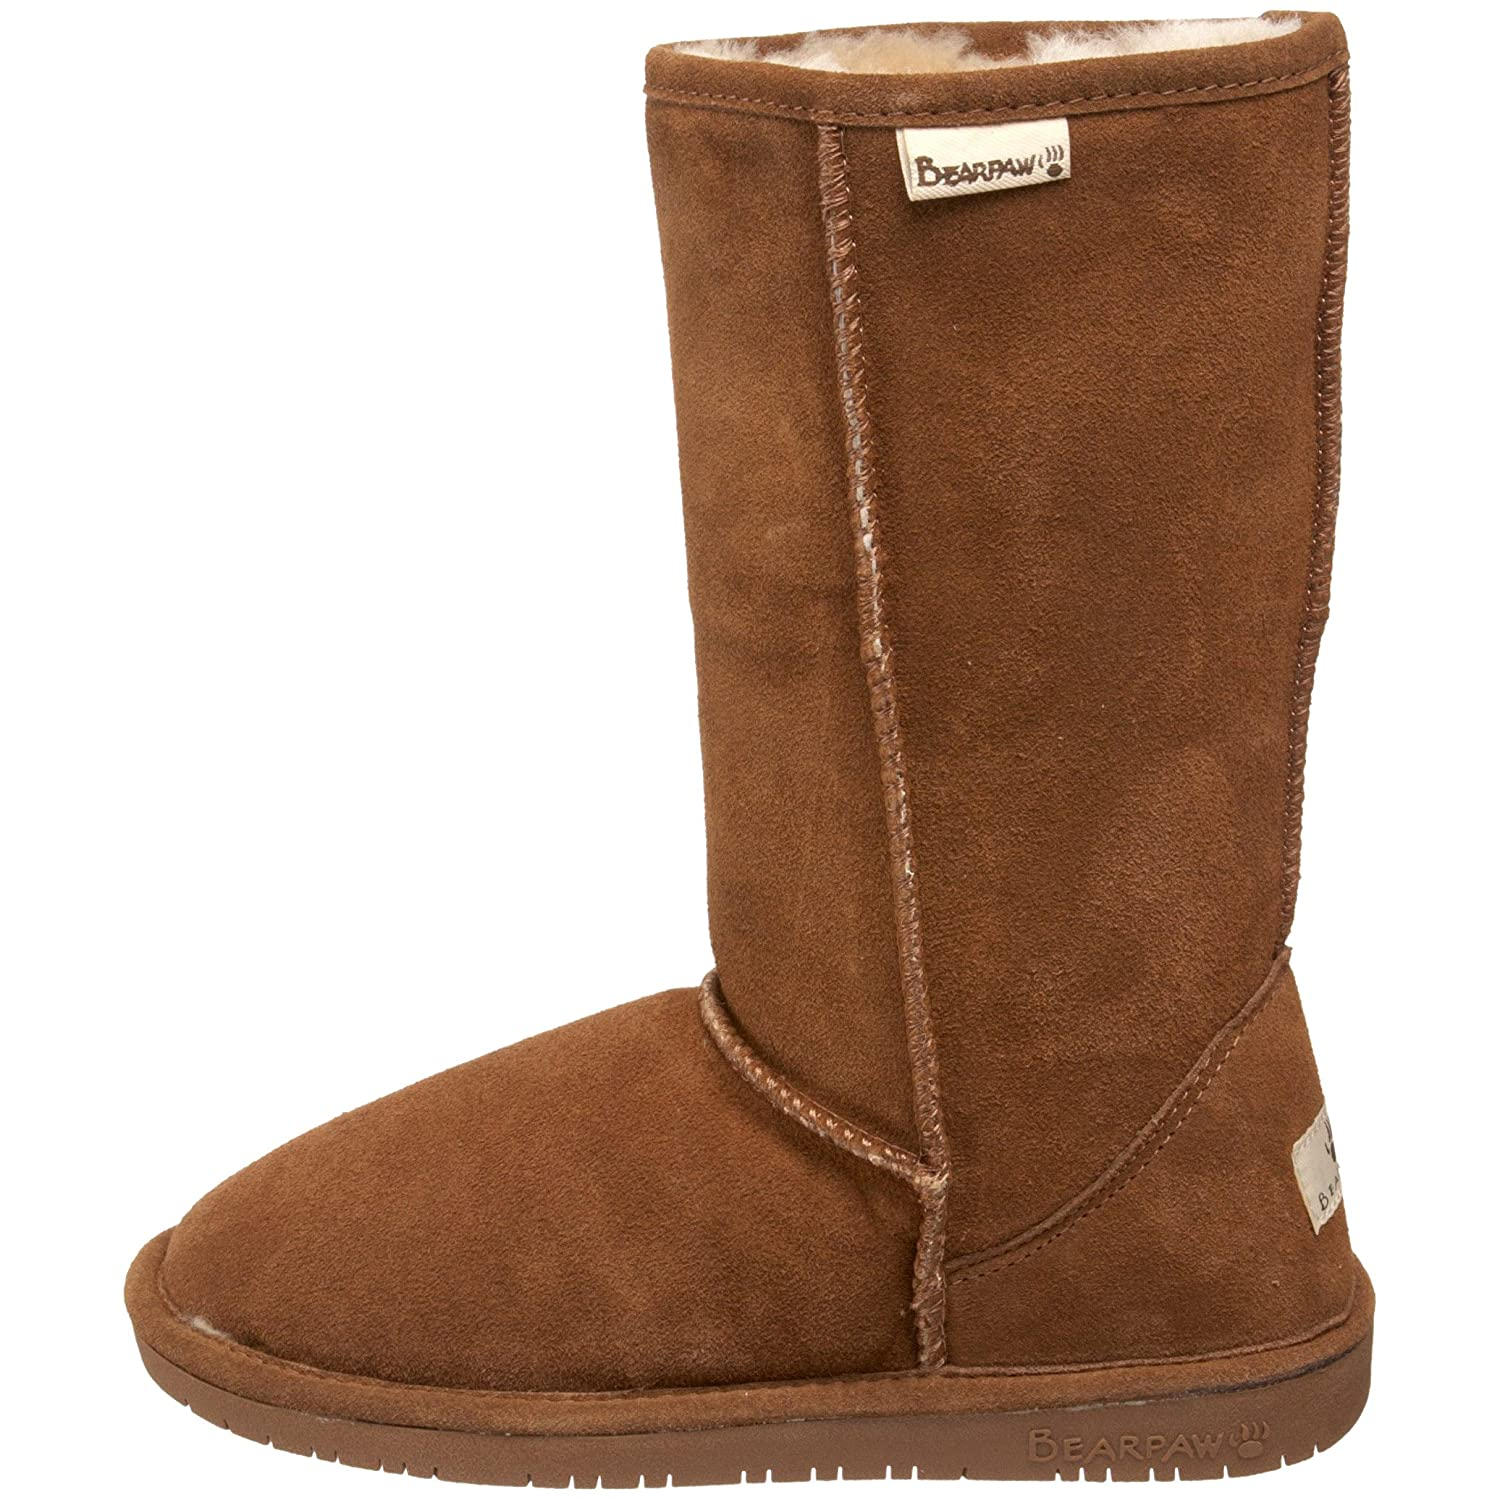 BEARPAW Fell Emma 10 Damen Stiefel mit Fell BEARPAW e1e73f